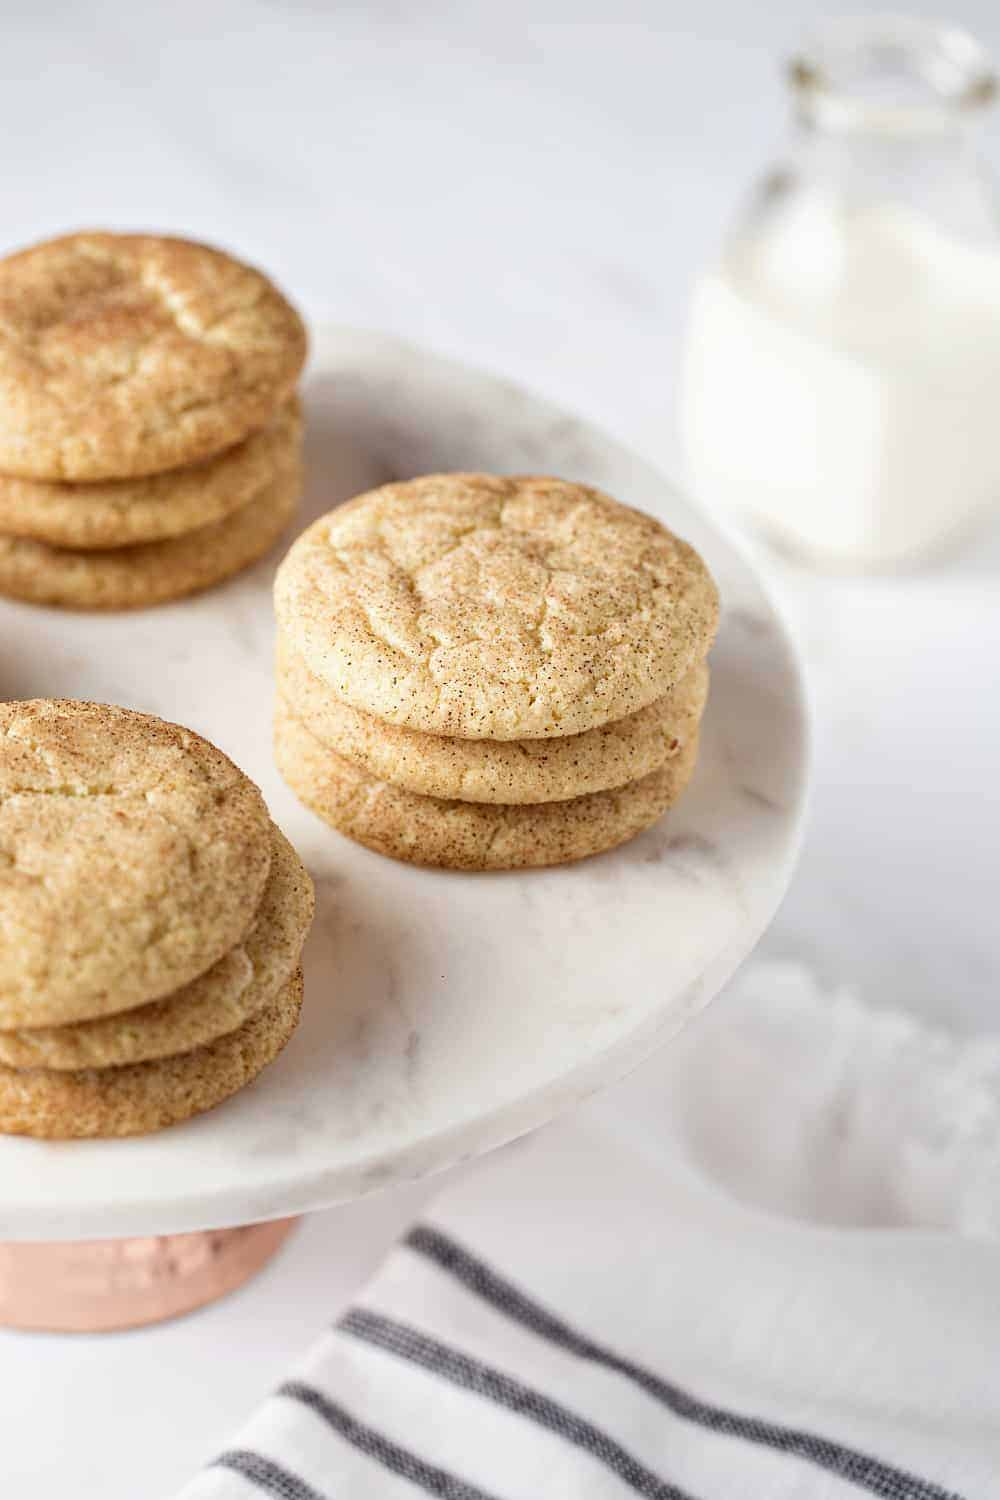 This Easy Snickerdoodle Cookies Recipe makes the BEST Snickerdoodle Cookies. It'll become your new fave!